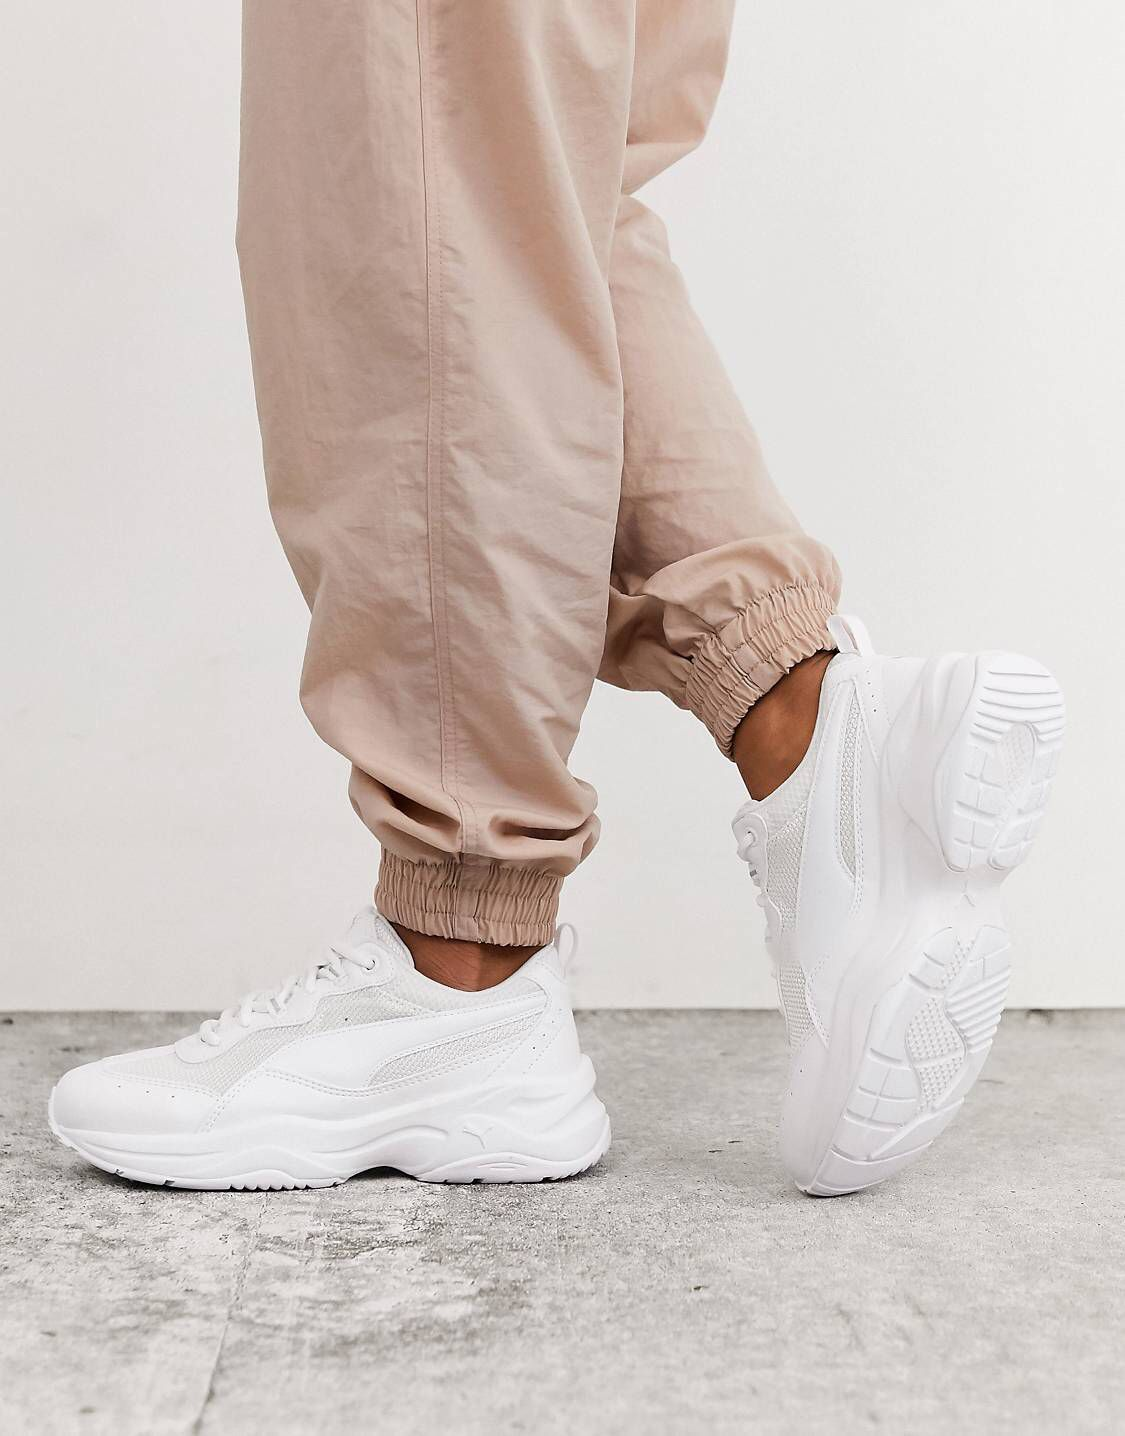 Pin by Aniya on Fashion❤️ in 2020 | White sneakers outfit ...